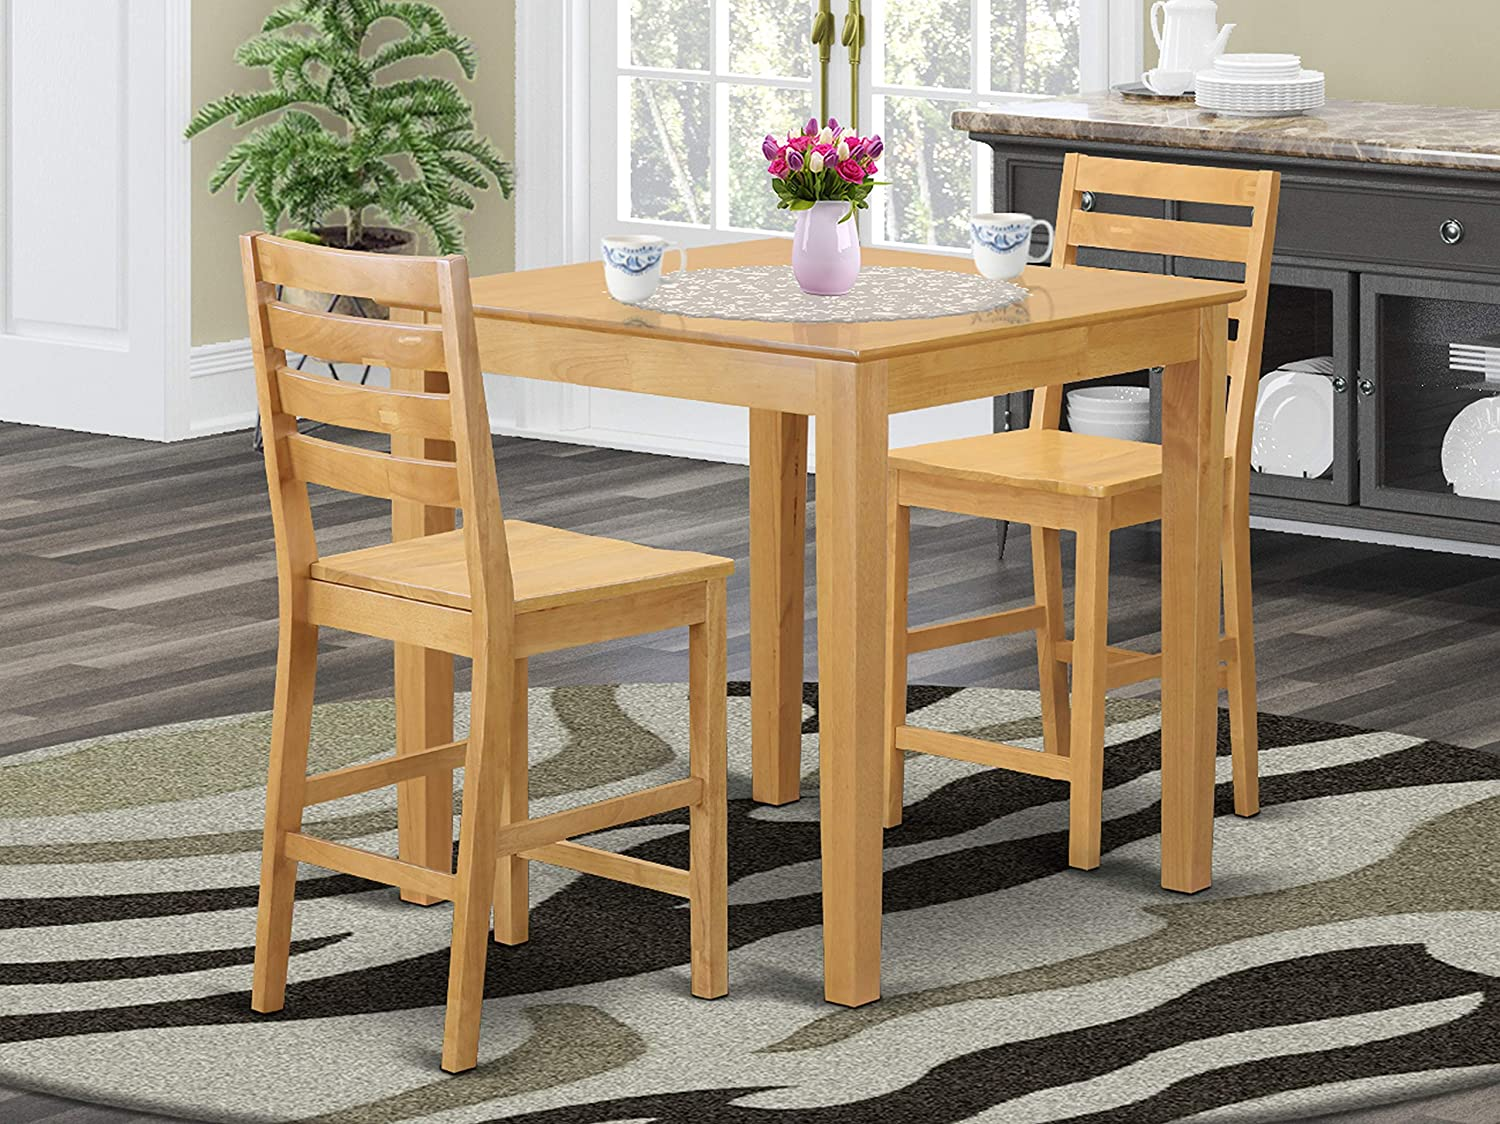 3 PC counter height Table and chair set-pub Table and 2 Kitchen bar stool